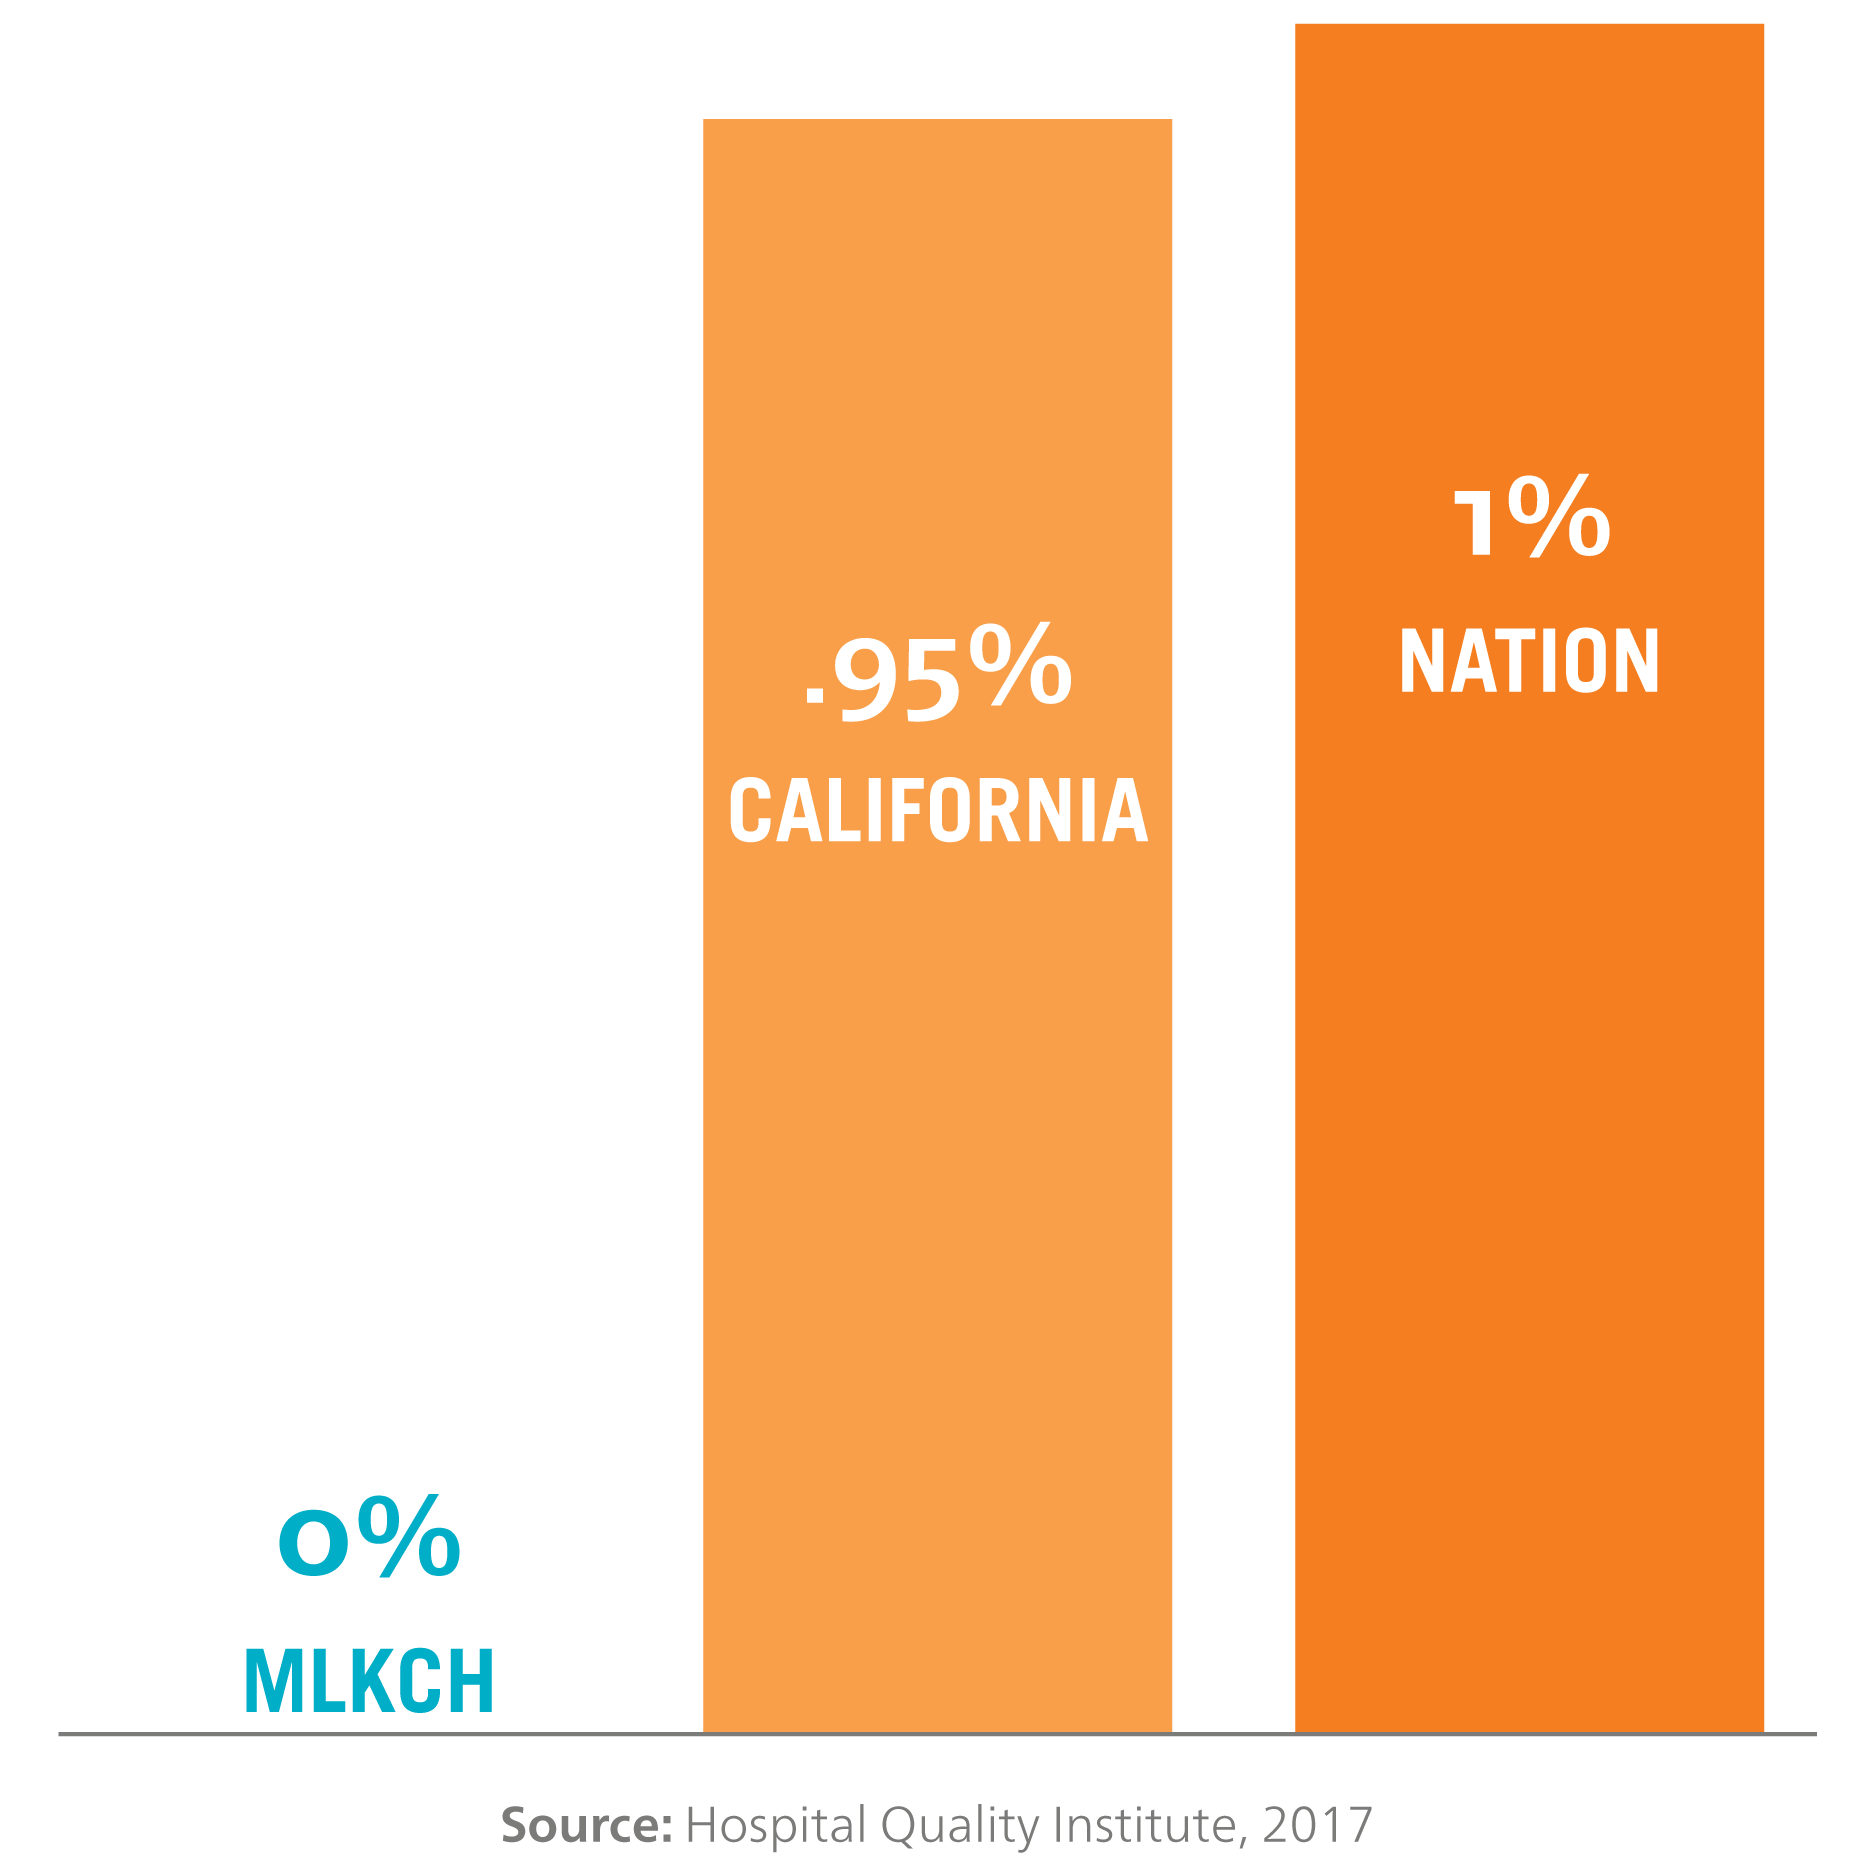 Bar chart for 2017 data comparing colon surgery related infections. MLKCH has 0 percent, California has .95 percent and the national rate is 1 percent.